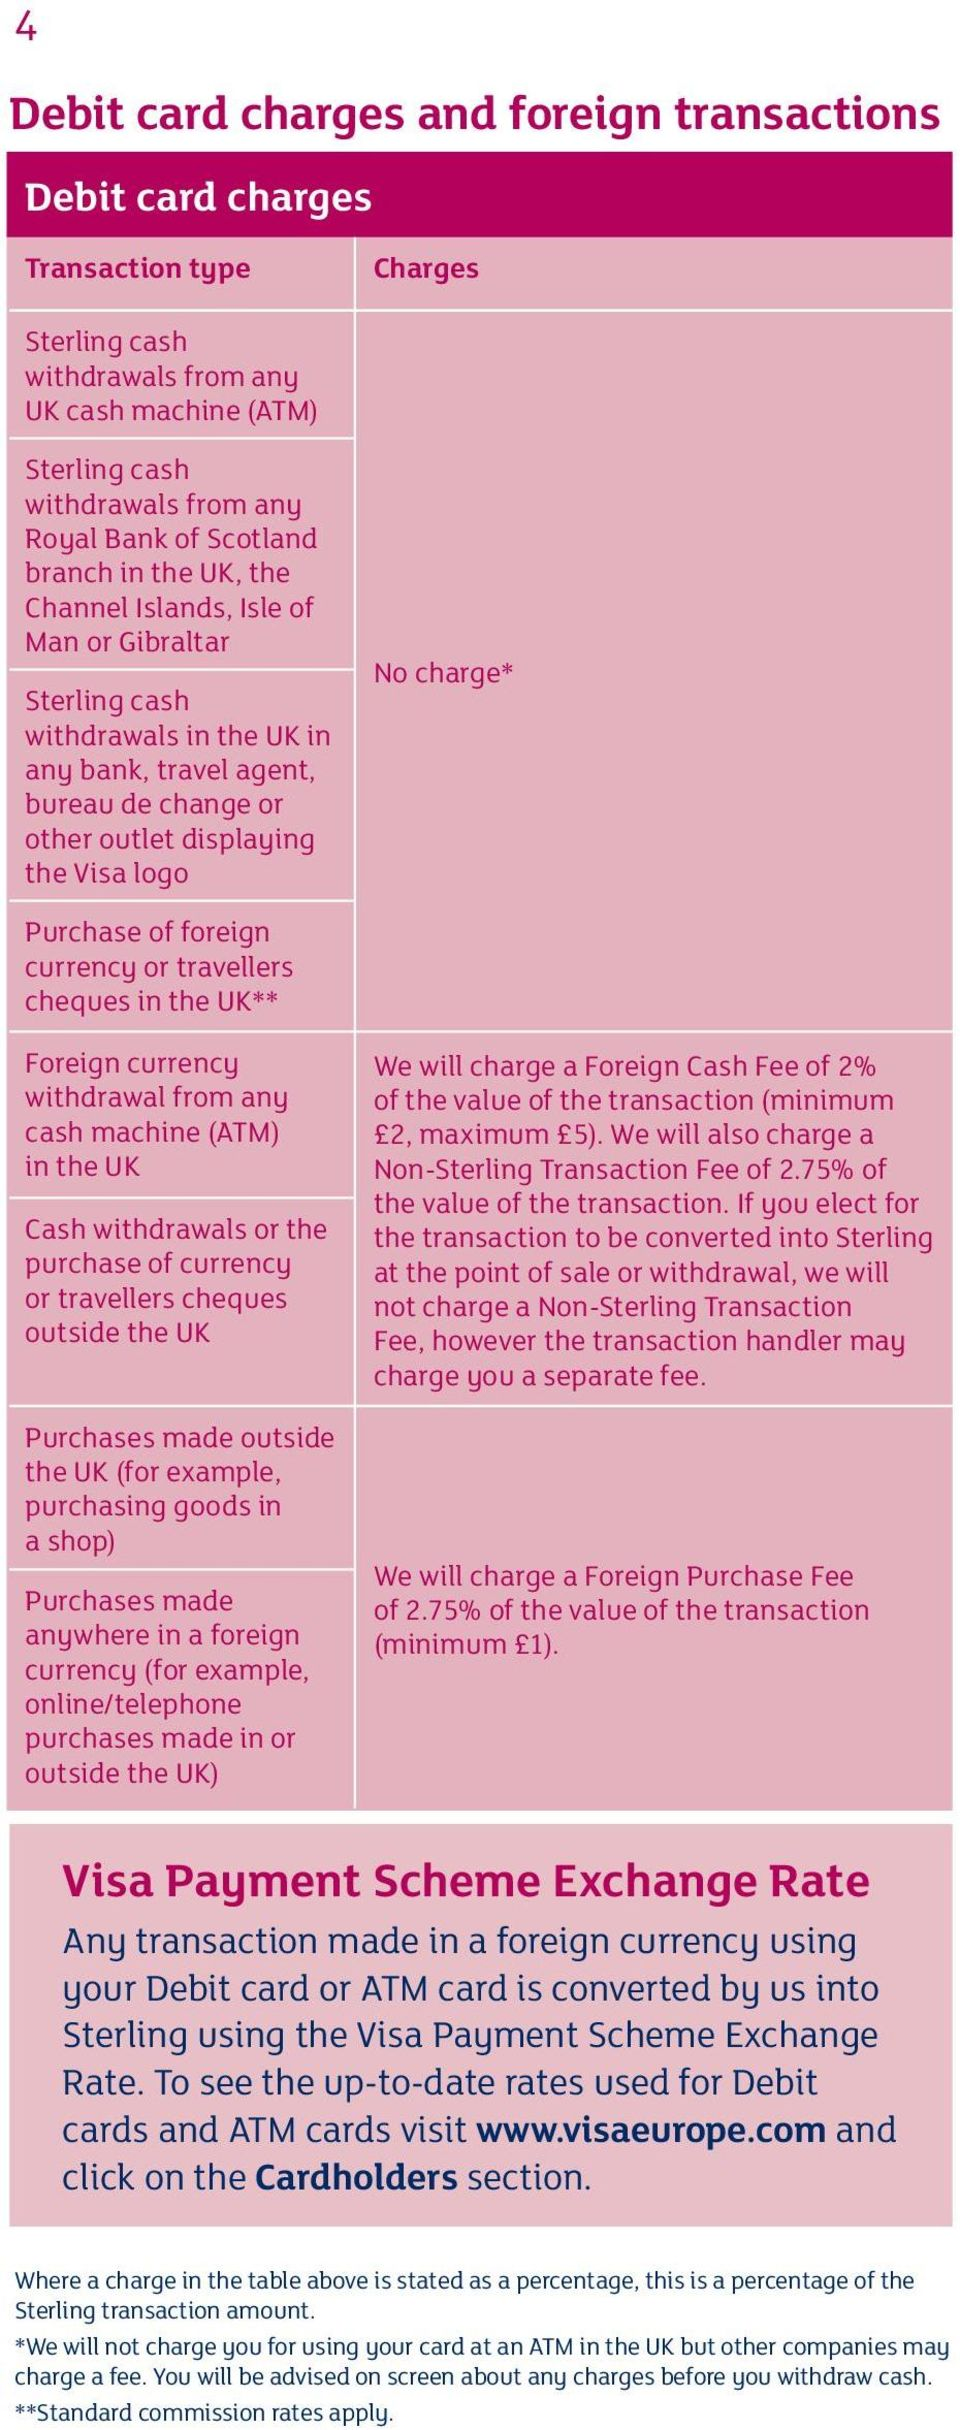 Purchase of foreign currency or travellers cheques in the UK** Foreign currency withdrawal from any cash machine (ATM) in the UK Cash withdrawals or the purchase of currency or travellers cheques